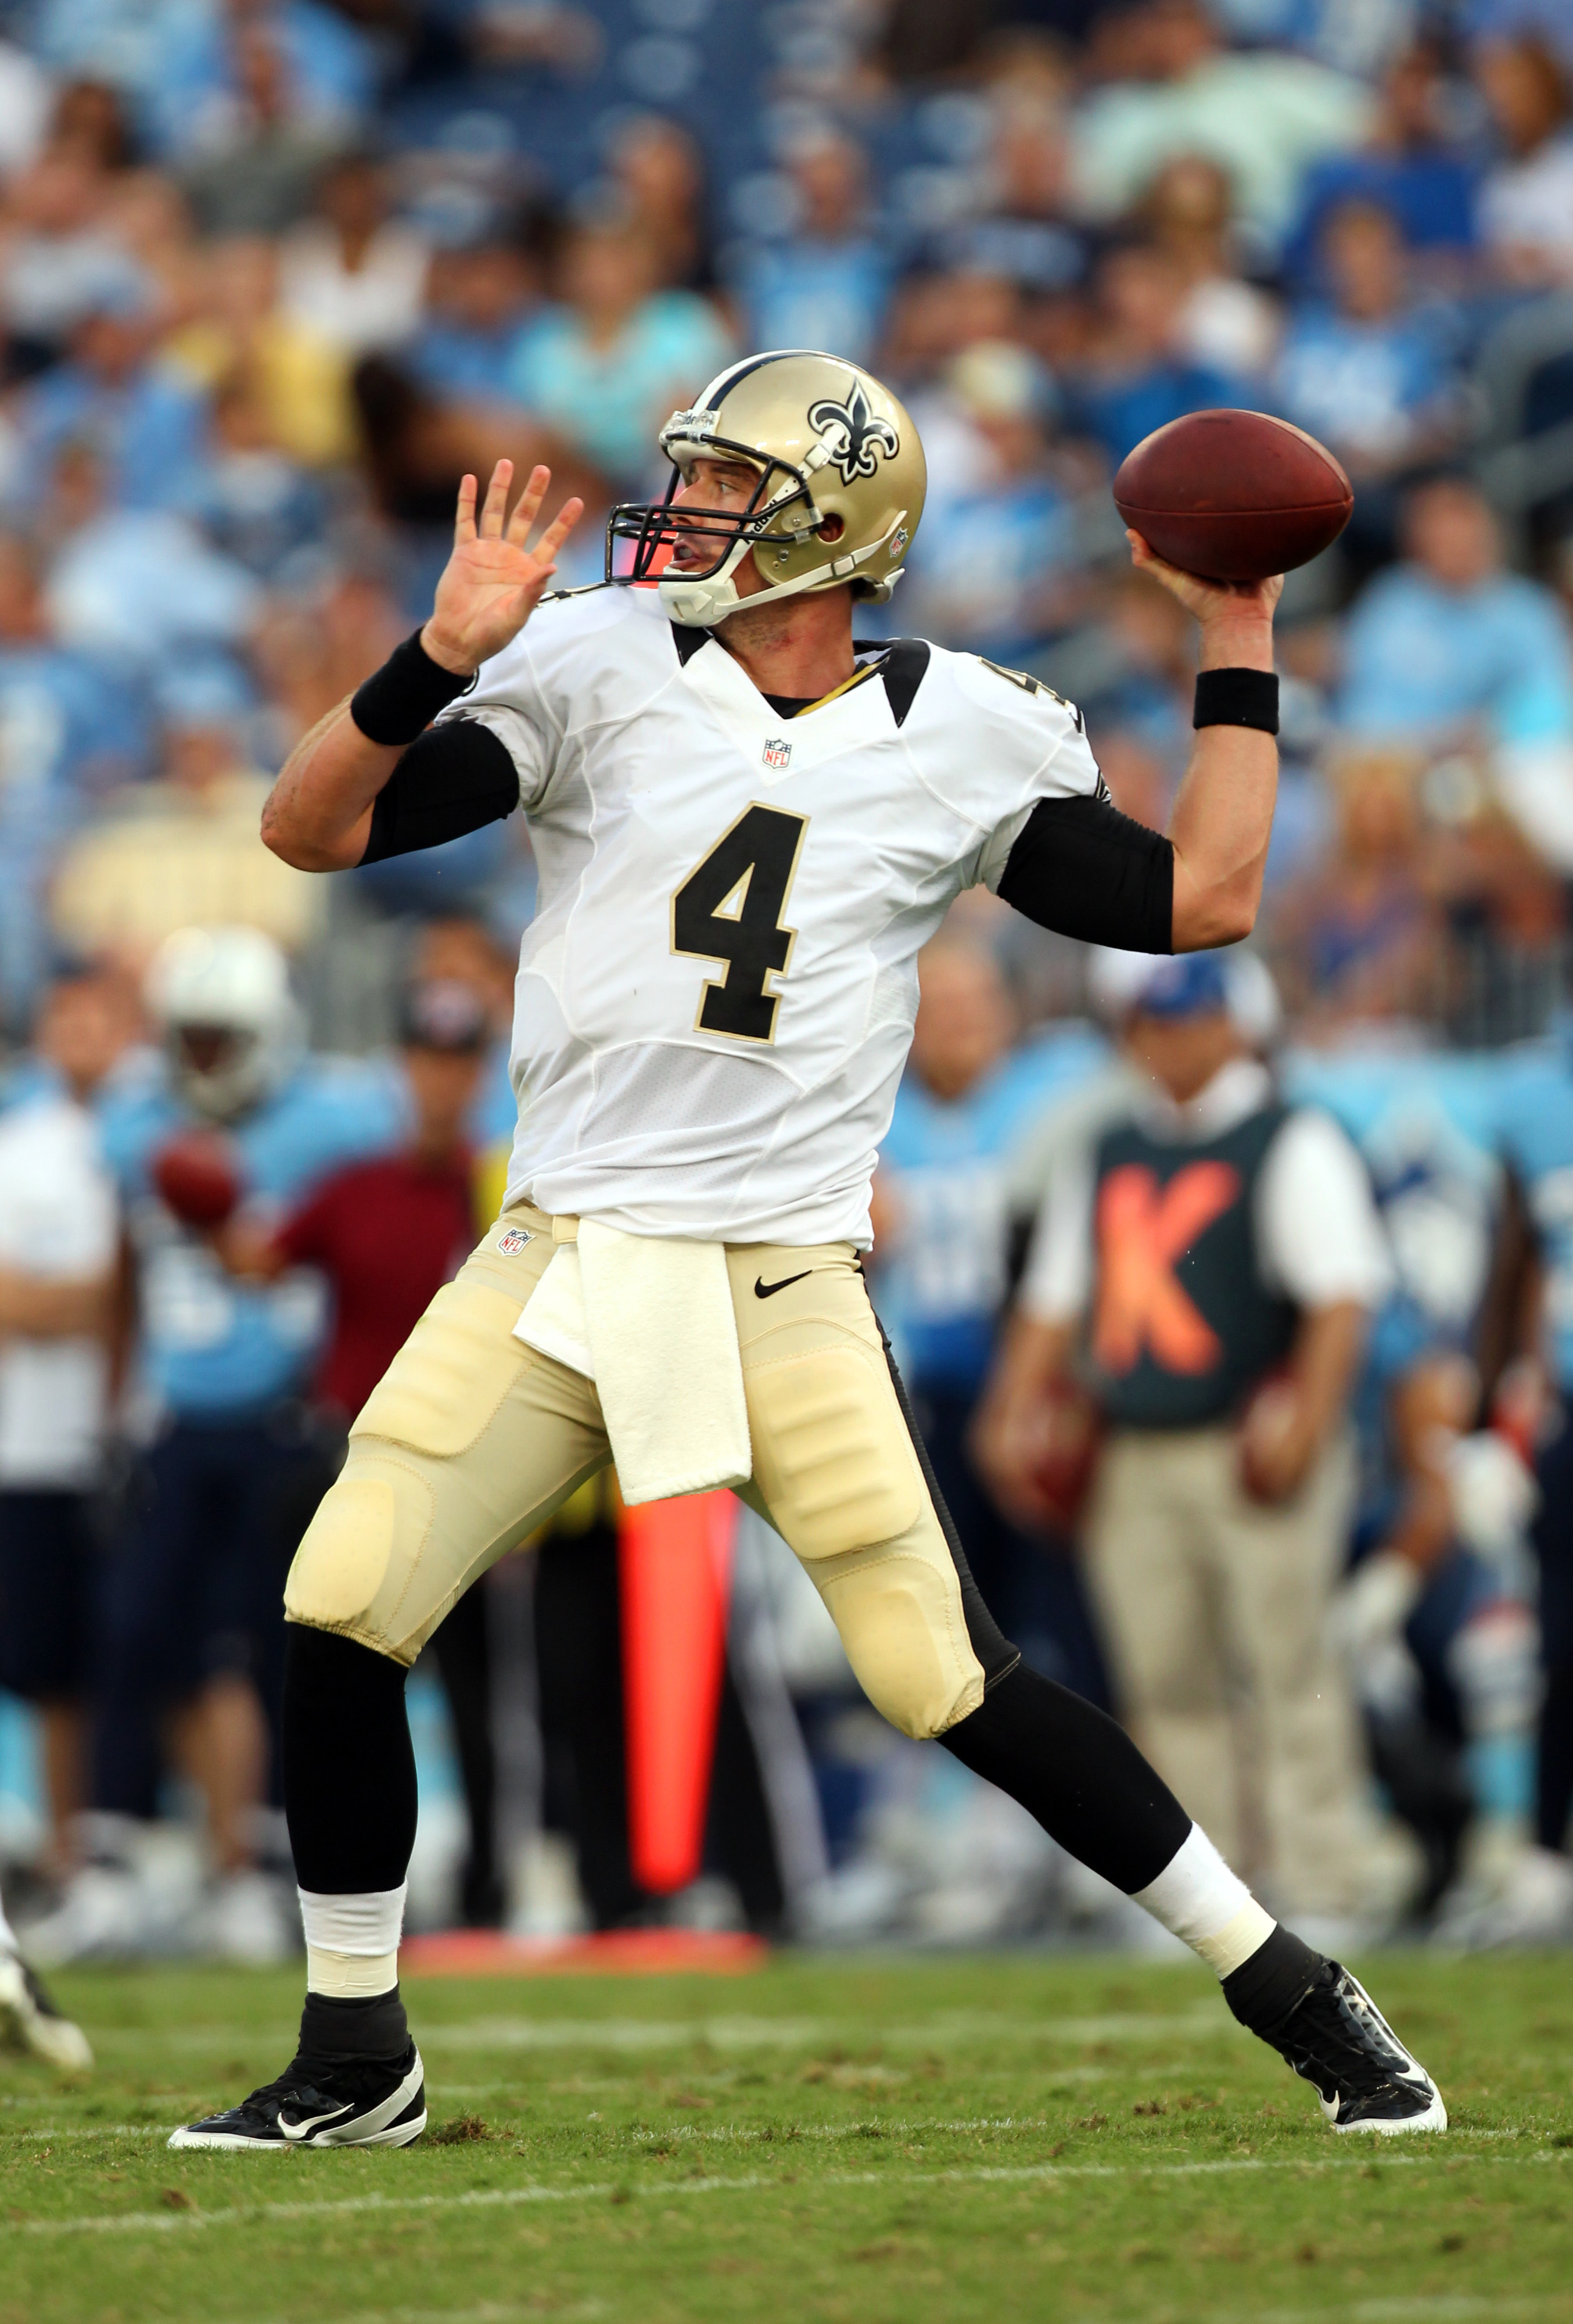 NASHVILLE, TN - AUGUST 30: Sean Canfield #4 of the New Orleans Saints passes the ball against the Tennessee Titans at LP Field on August 30, 2012 in Nashville, Tennessee.  (Photo by Joe Murphy/Getty Images)